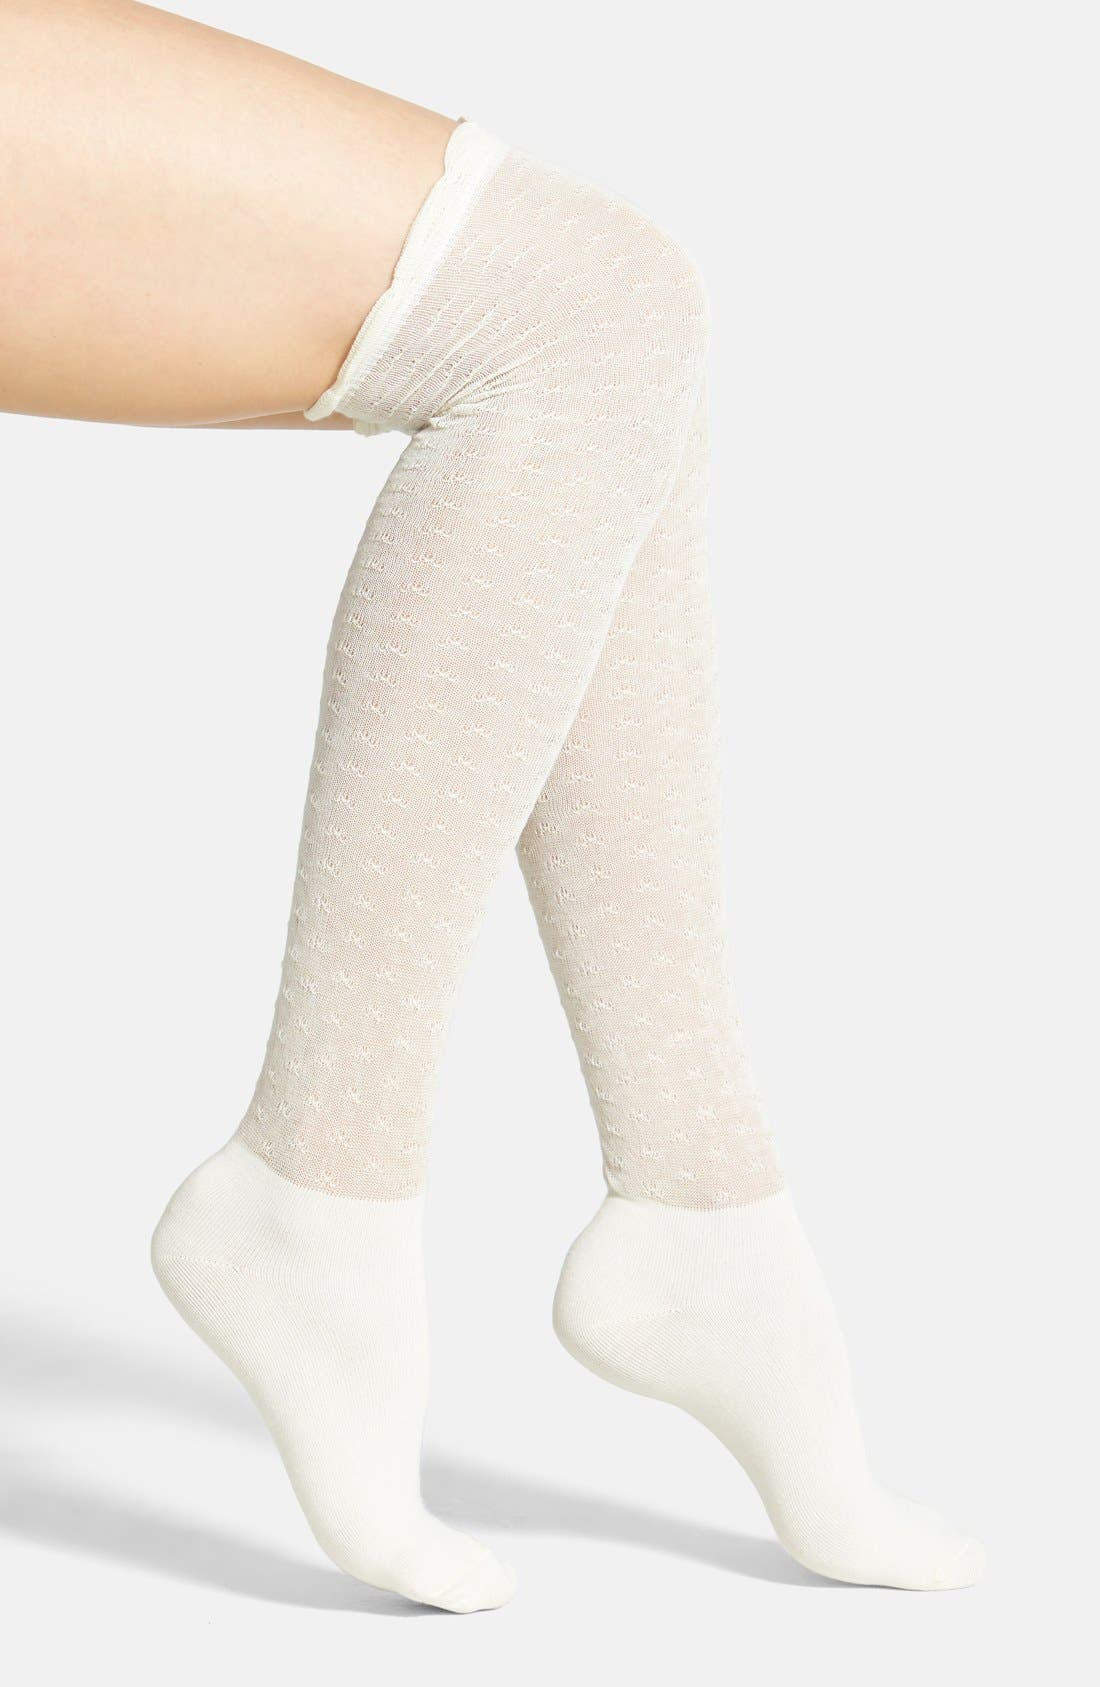 Main Image - PACT Slouchy Organic Cotton Over the Knee Socks